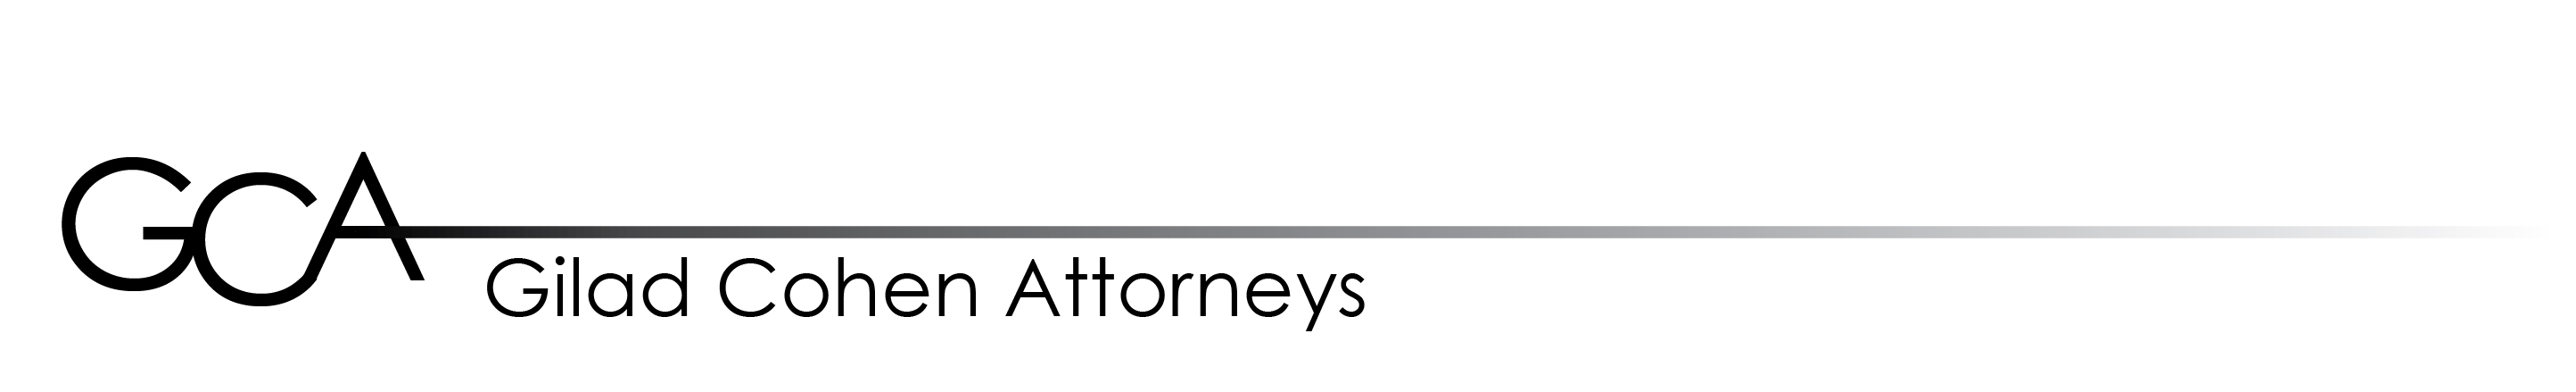 Gilad Cohen Attorneys Logo